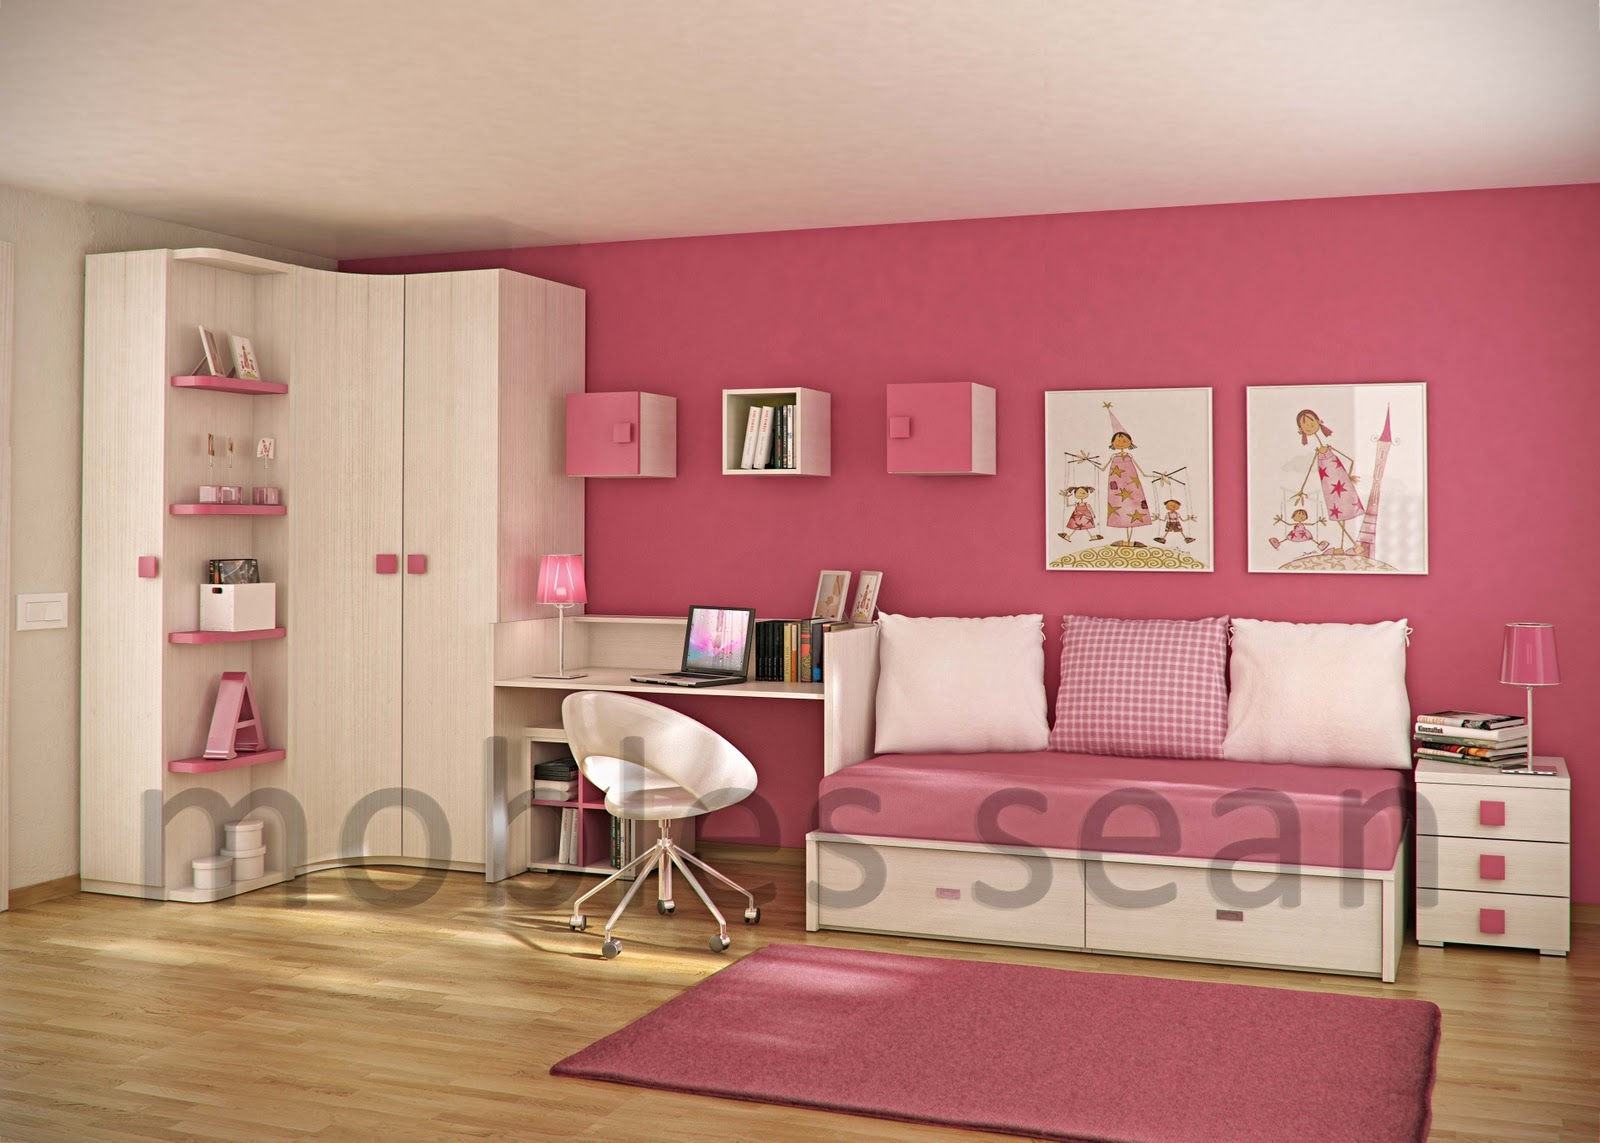 Space saving designs for small kids rooms - Kids room image ...